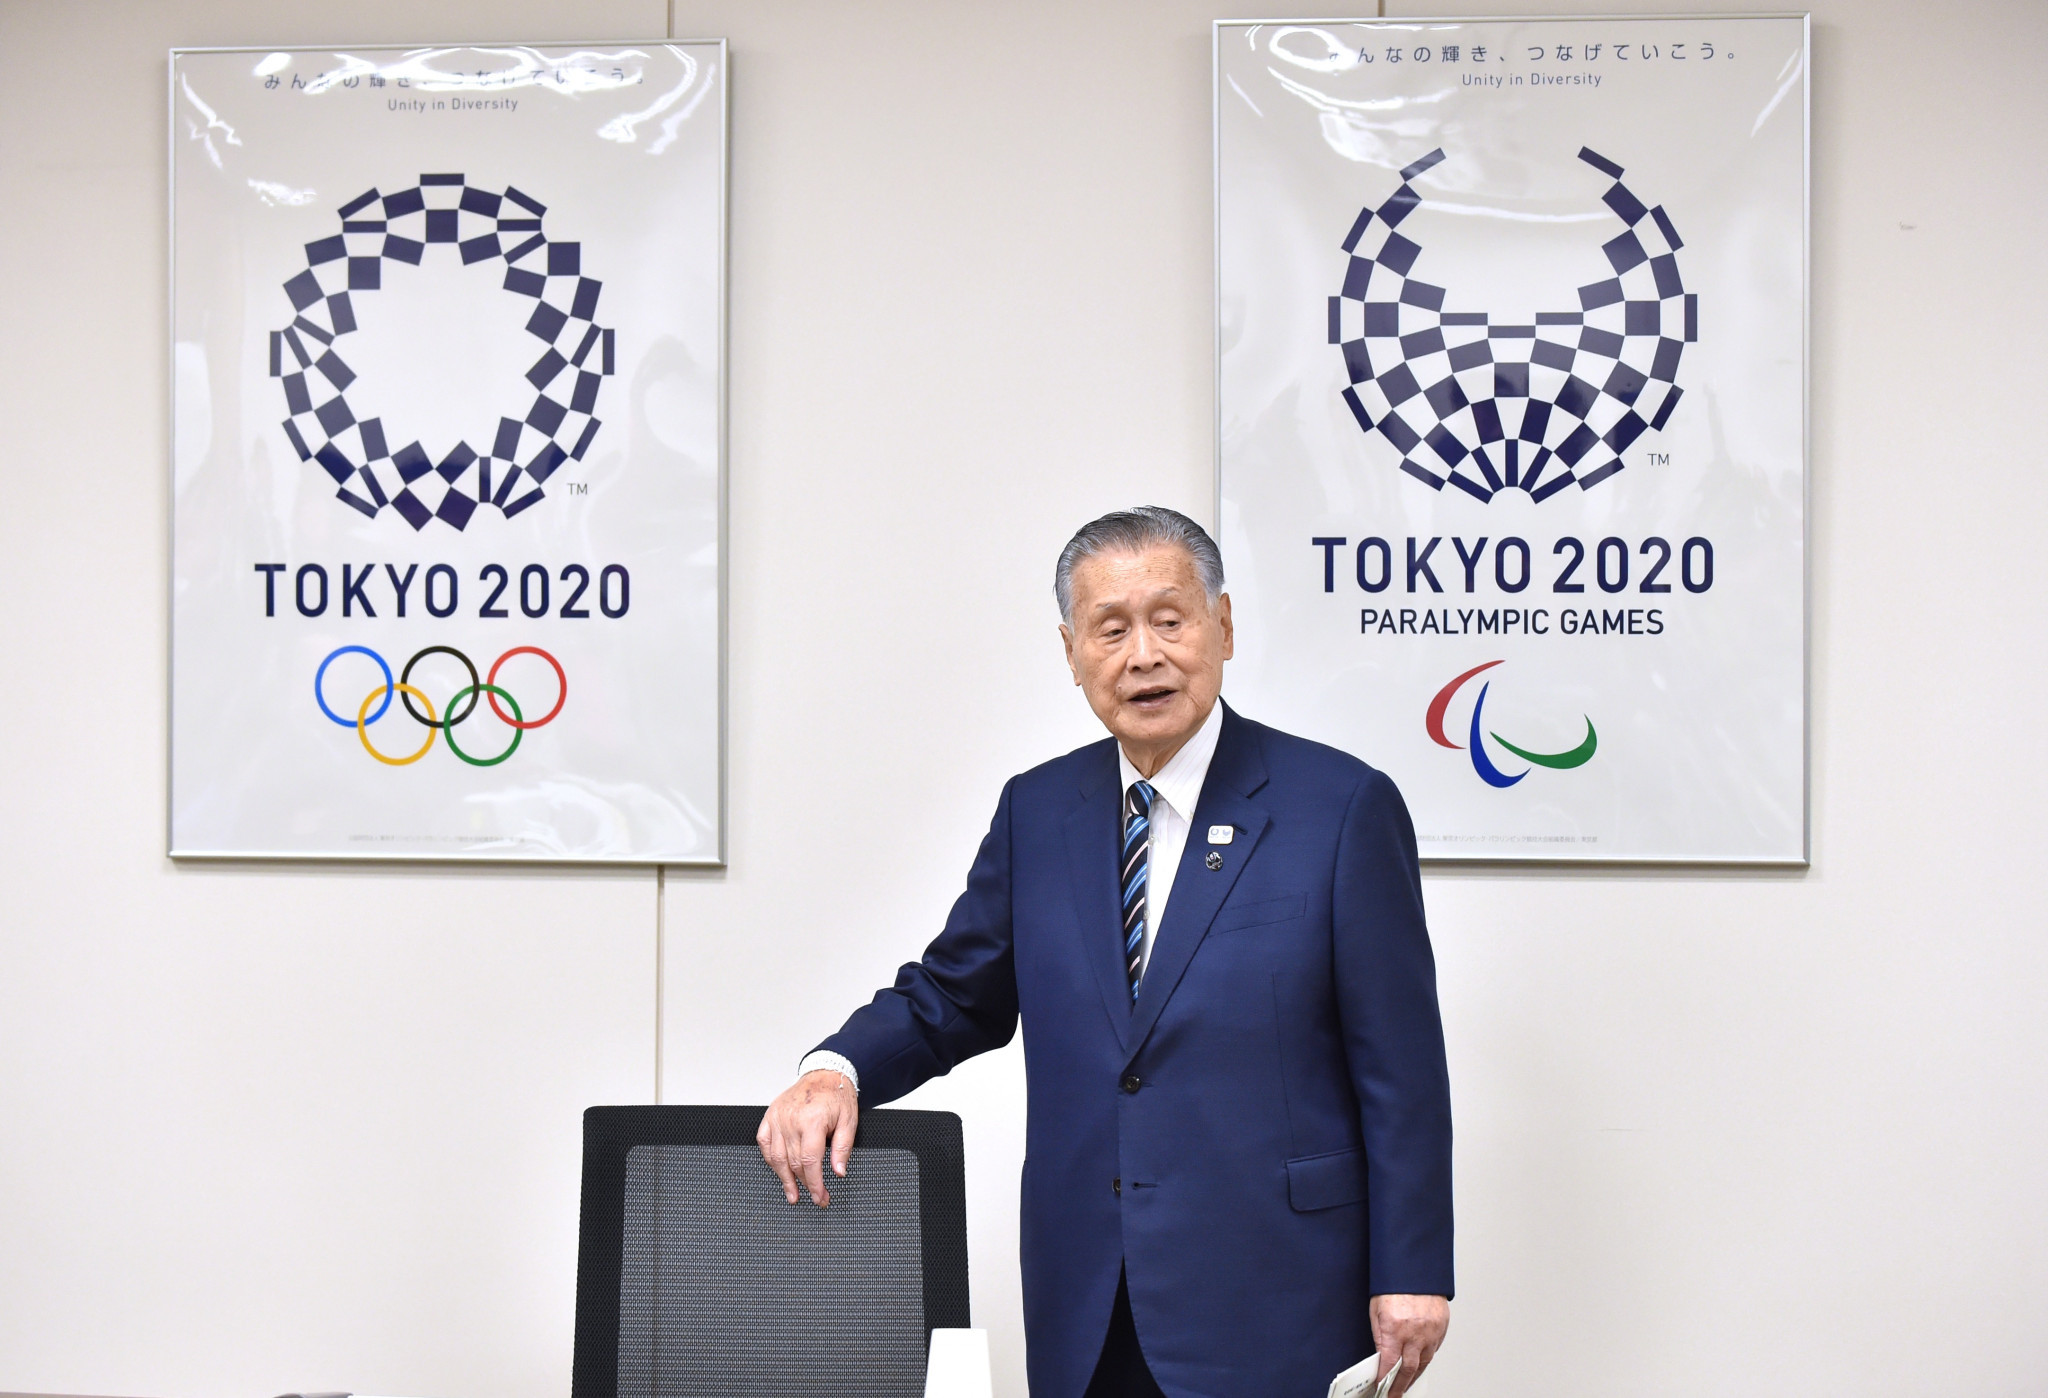 Tokyo 2020 President Yoshirō Mori claimed last month that budget reduction remains the